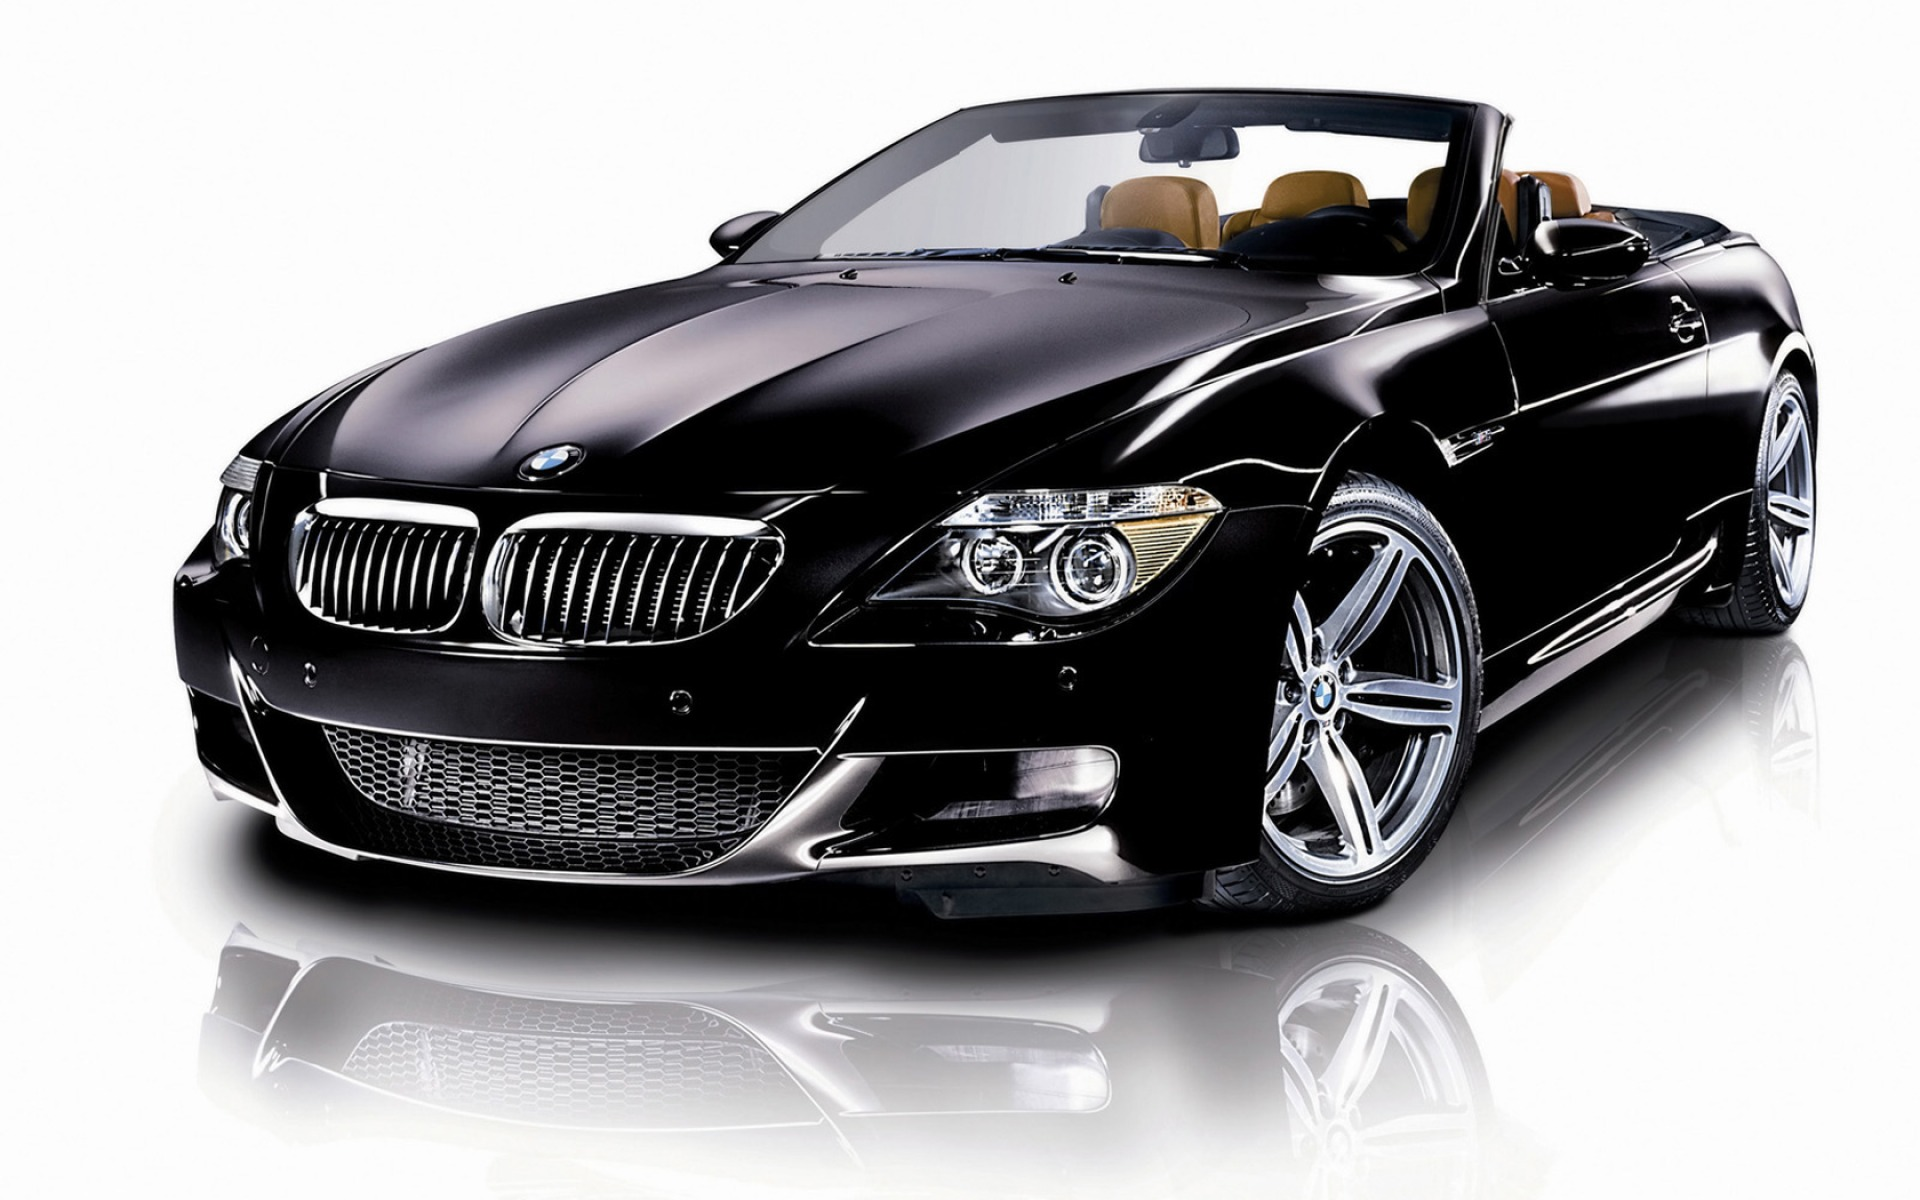 Ultrablogus  Winsome Bmw Car Wallpaper Wallpapers For Free Download About   With Foxy Bmw M Convertible Wallpaper Bmw Cars With Appealing Glass Interior Also Honda Interior Accessories In Addition Interior Replacement And Can Am Maverick Interior As Well As John Ward Interiors Additionally Interior Design Name From Allfreedownloadcom With Ultrablogus  Foxy Bmw Car Wallpaper Wallpapers For Free Download About   With Appealing Bmw M Convertible Wallpaper Bmw Cars And Winsome Glass Interior Also Honda Interior Accessories In Addition Interior Replacement From Allfreedownloadcom